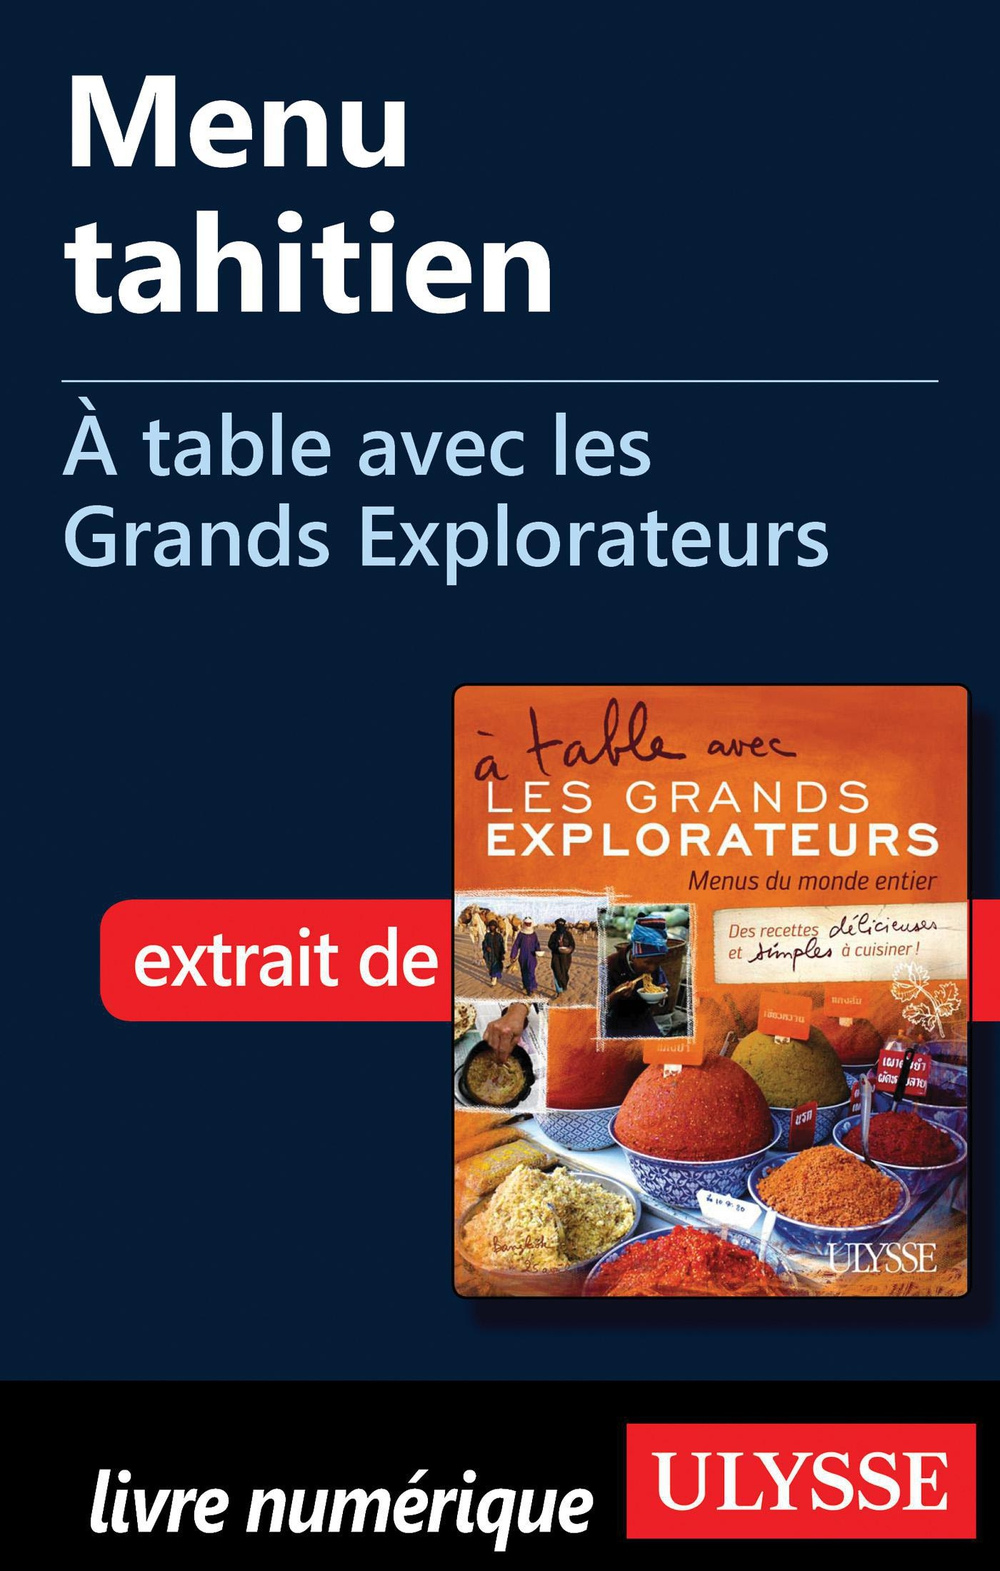 Menu tahitien - À table avec les Grands Explorateurs